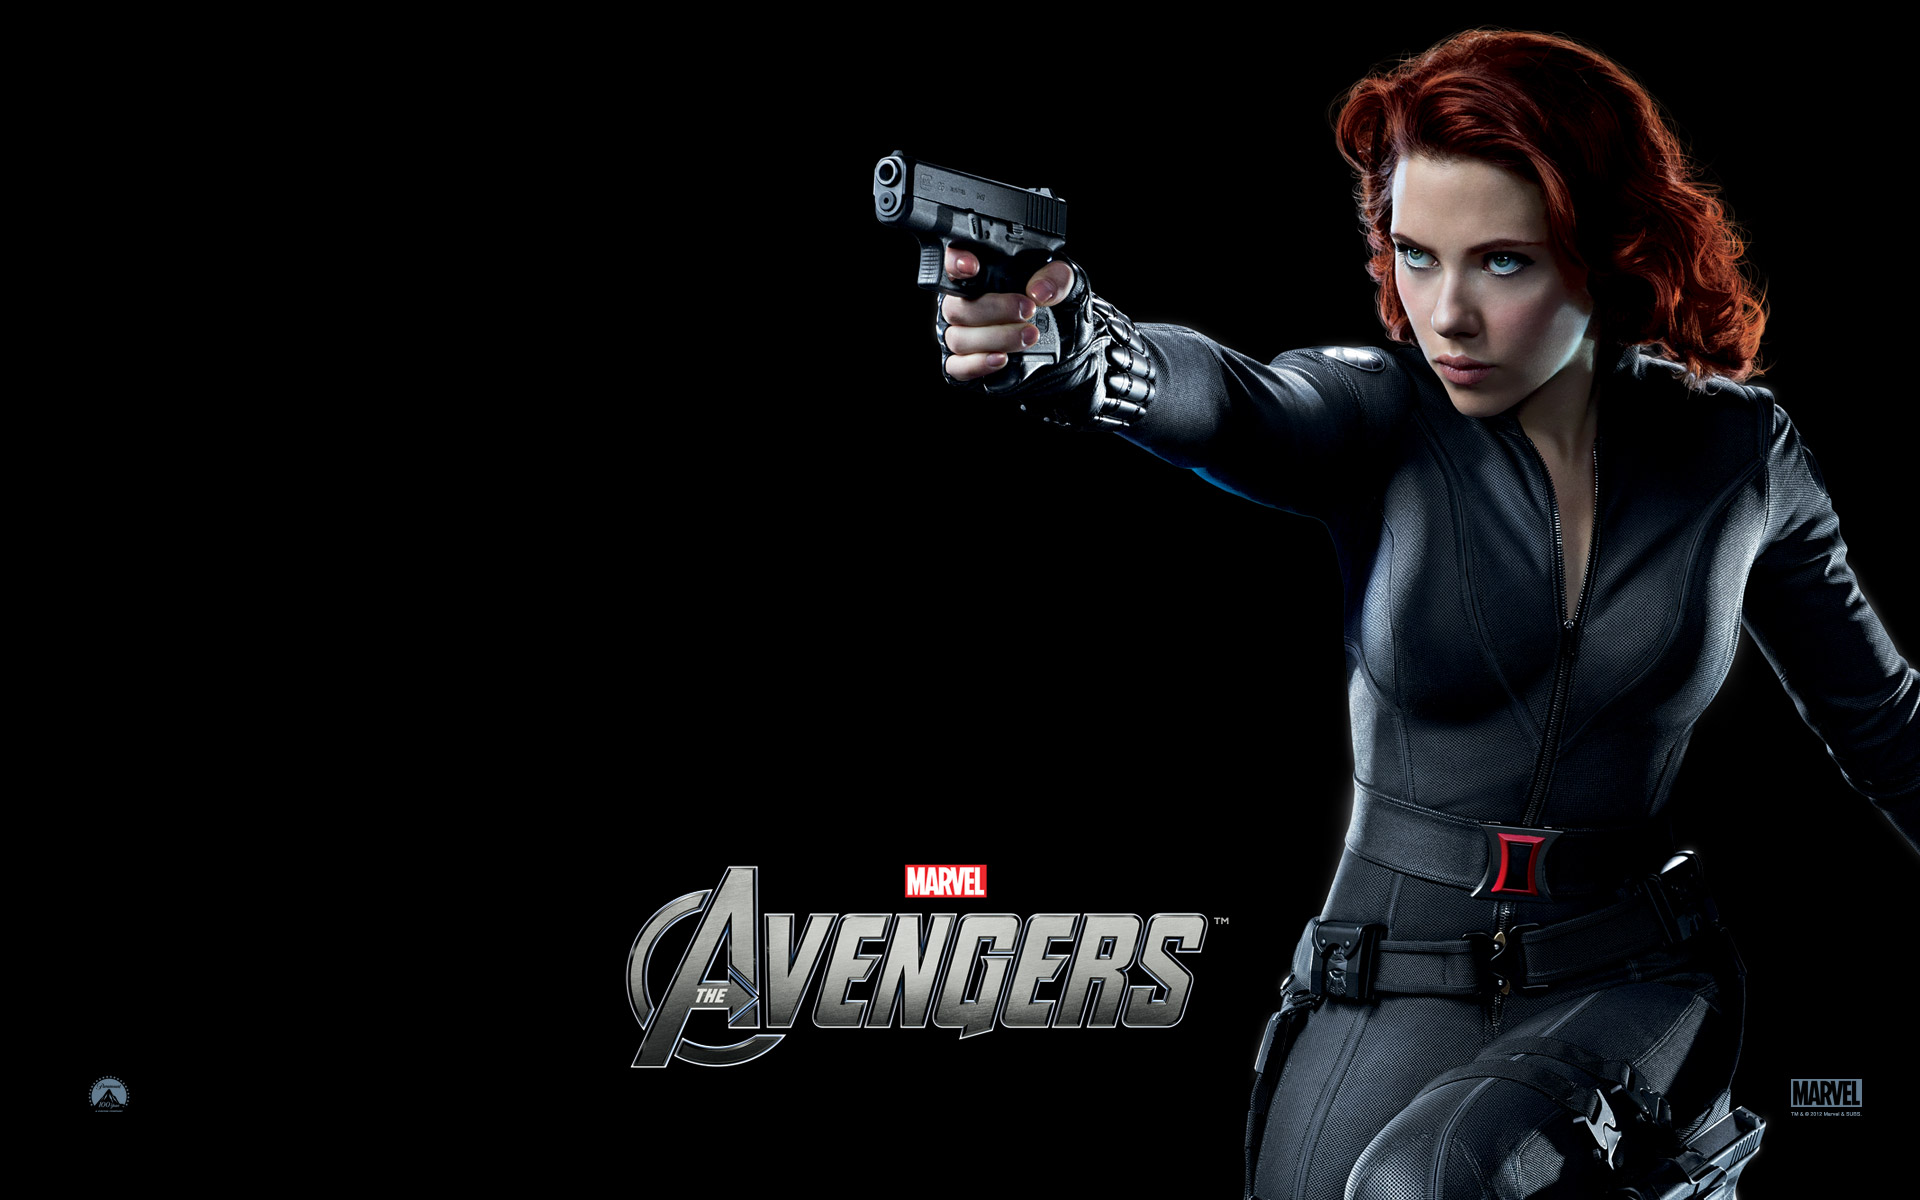 Scarlett johansson black widow wallpaper - photo#23